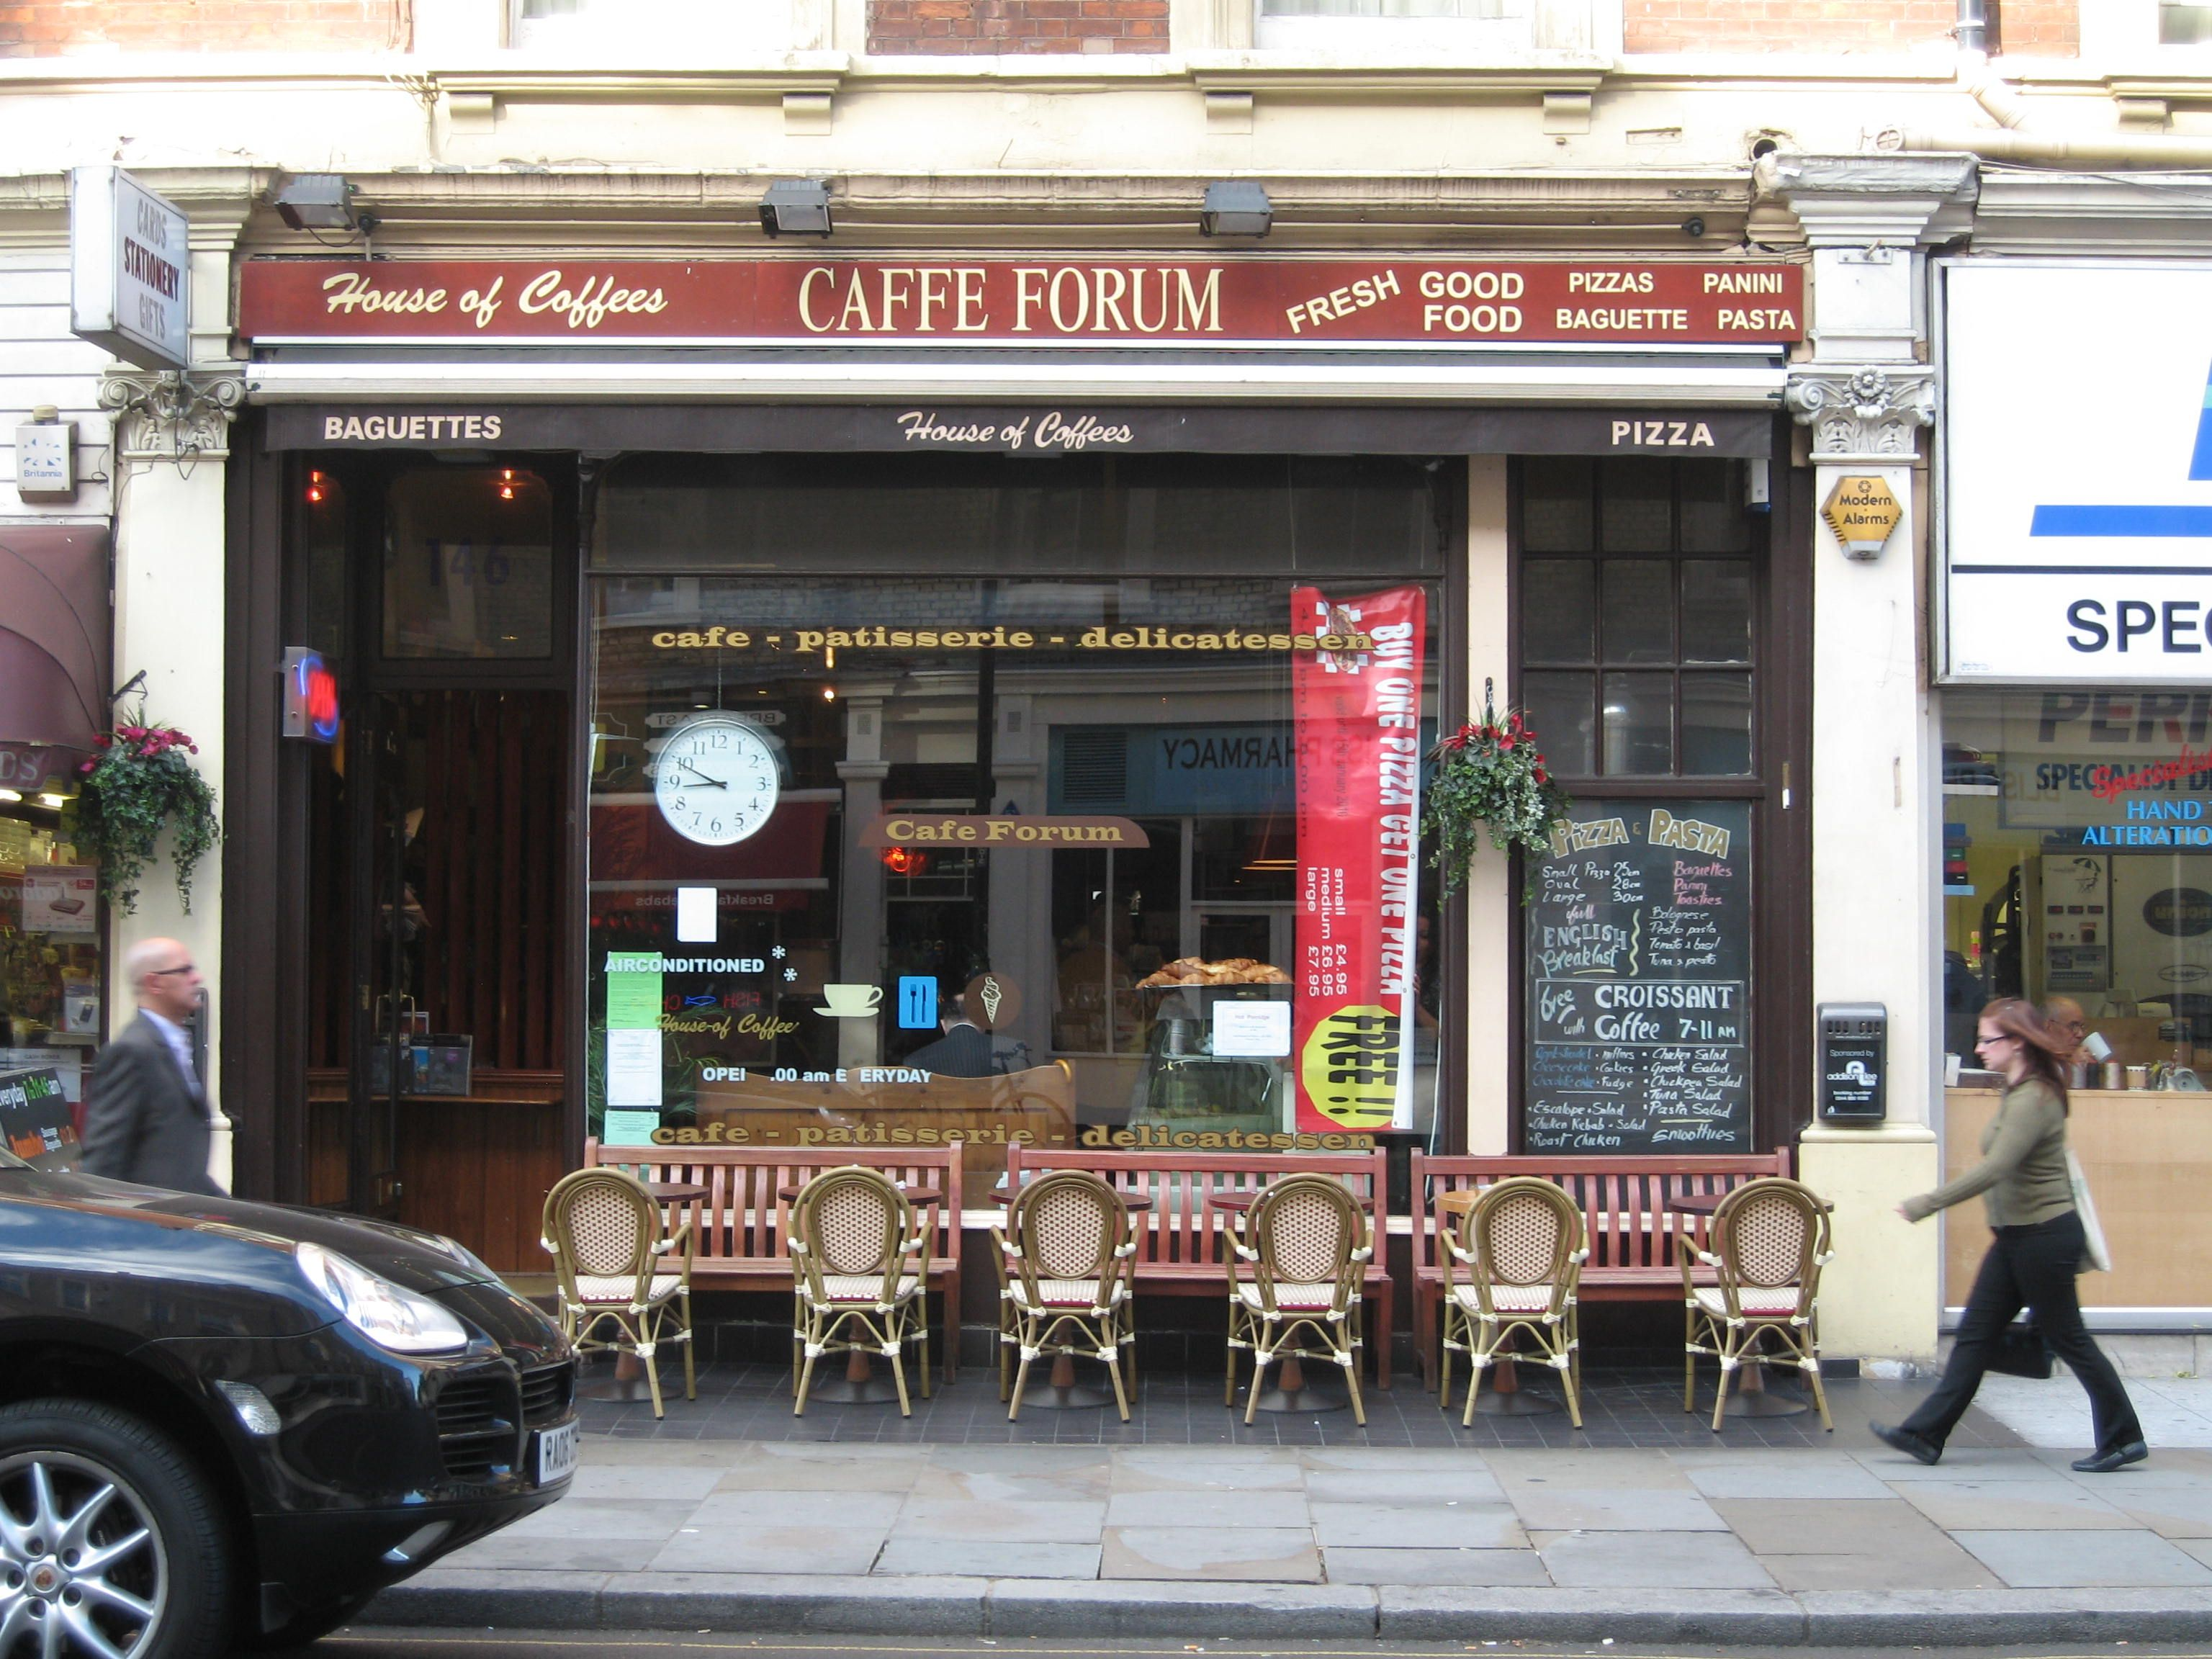 Cafe forum a cozy study nook on gloucester road in